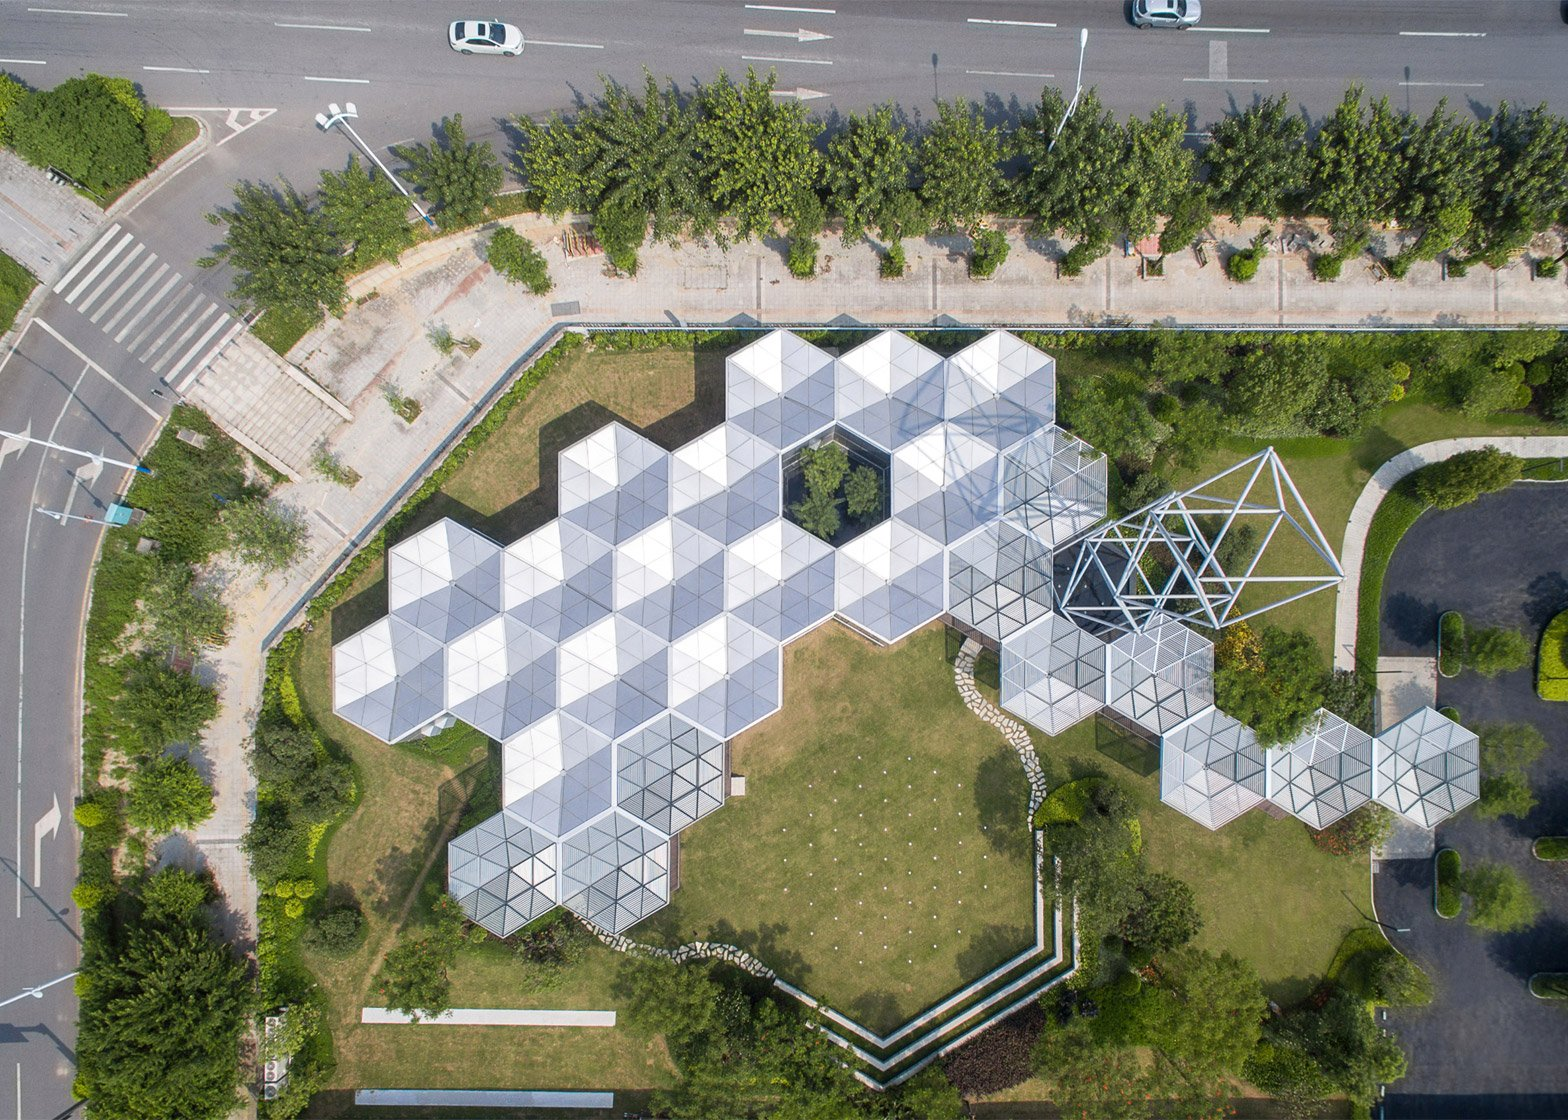 15 Of 15; HEX SYS Modular Building System By OPEN Architecture